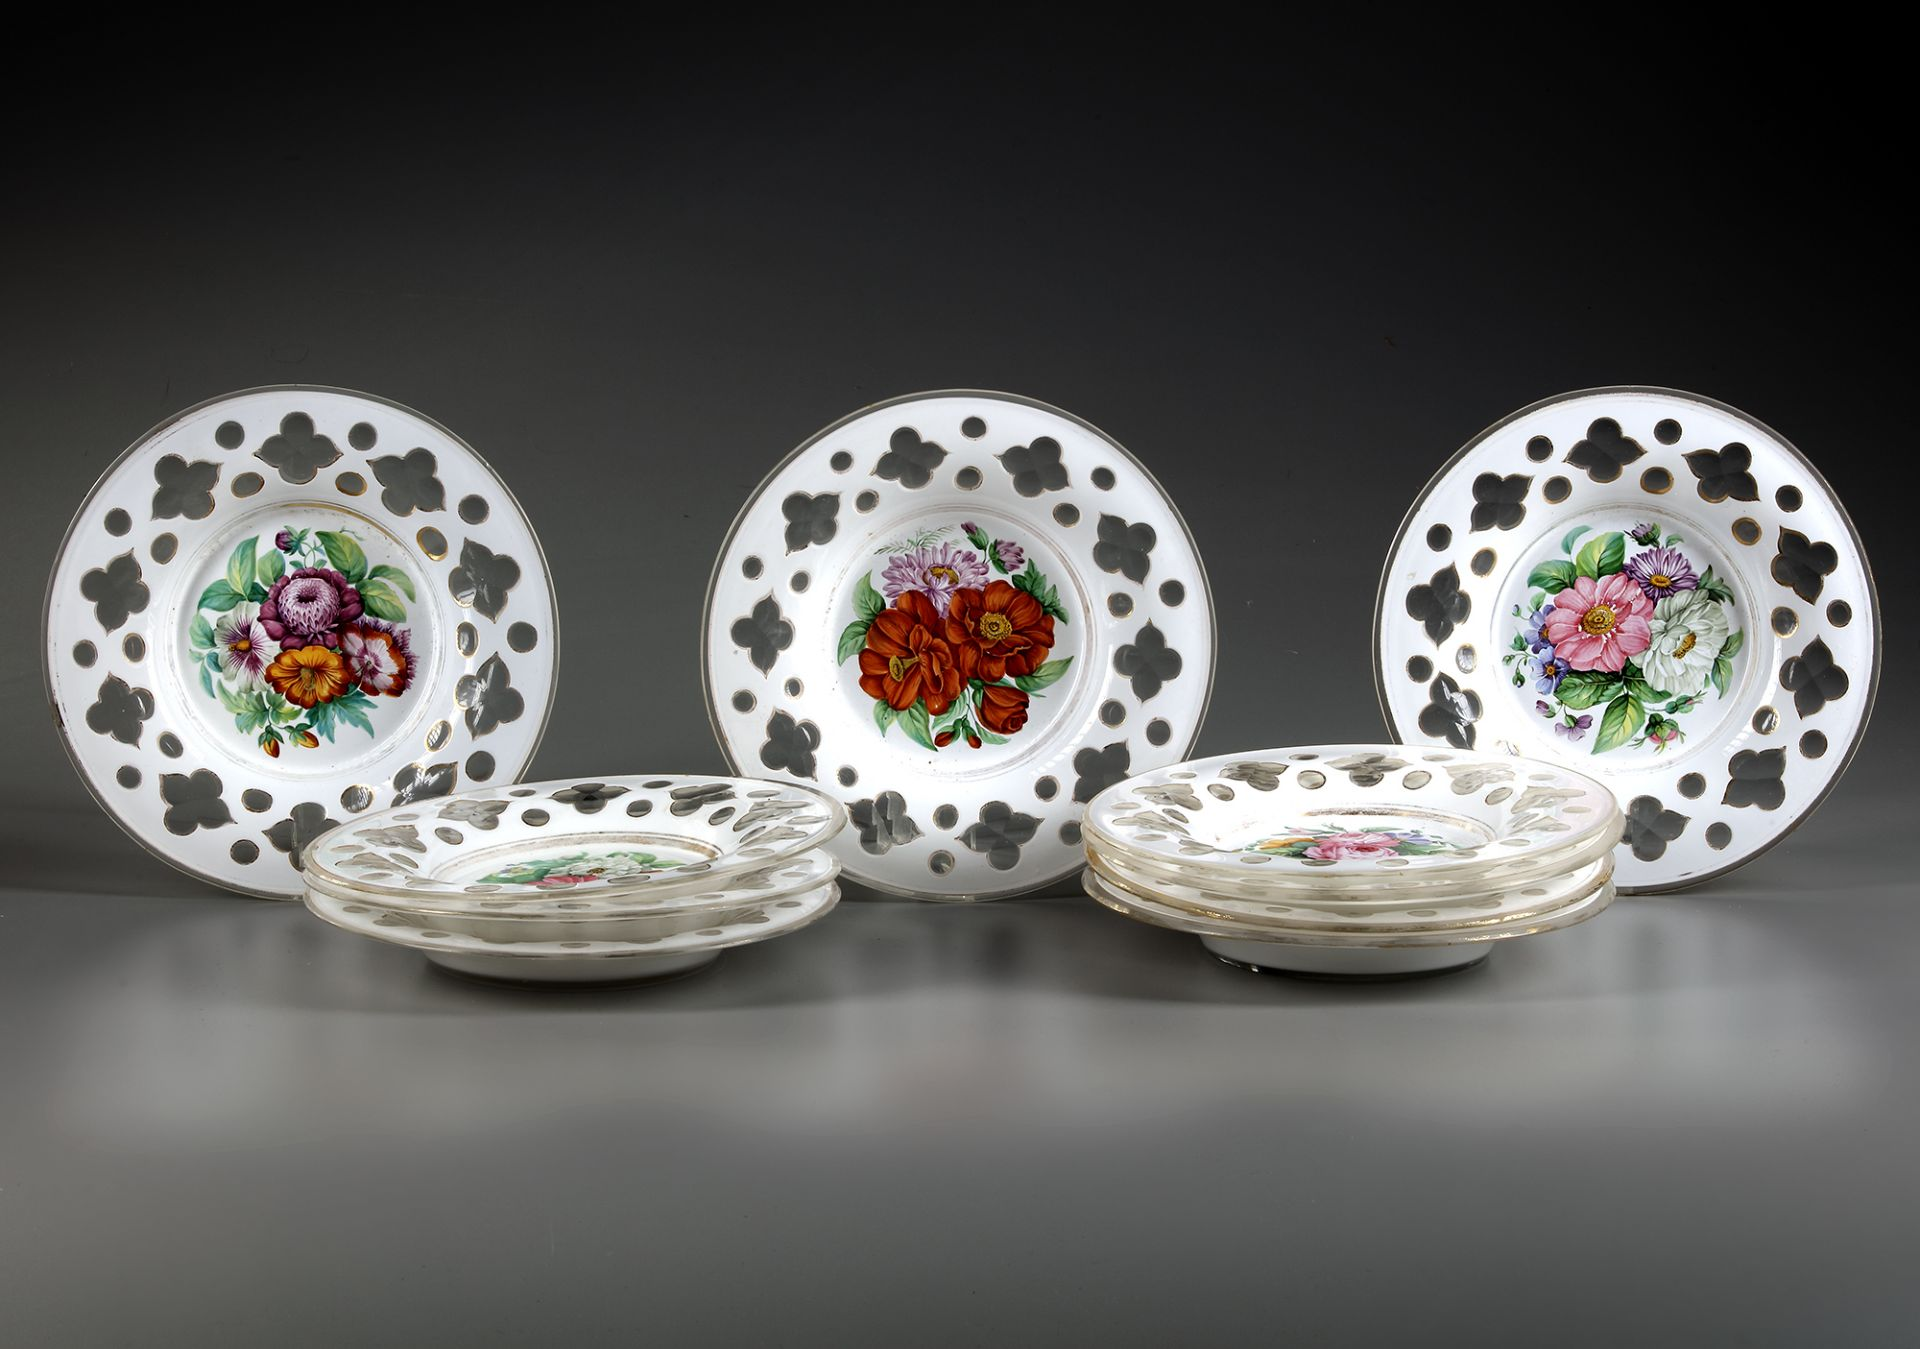 A FRENCH SET OF OPALINE PLATES, 19TH CENTURY - Image 2 of 2